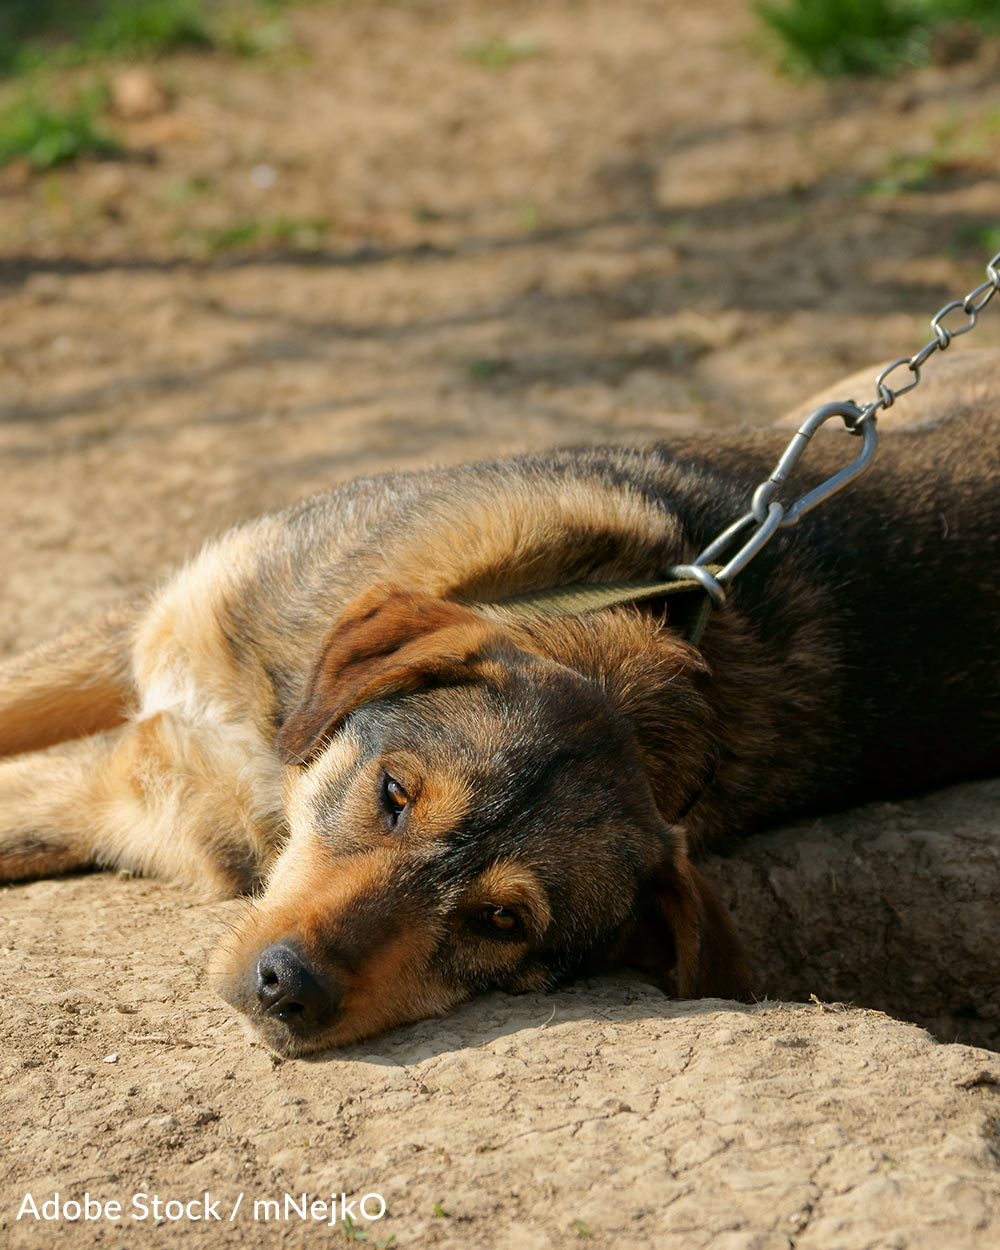 The Safe Outdoor Dogs Act would have made it a misdemeanor to leave a dog chained up without food, water, or shelter.